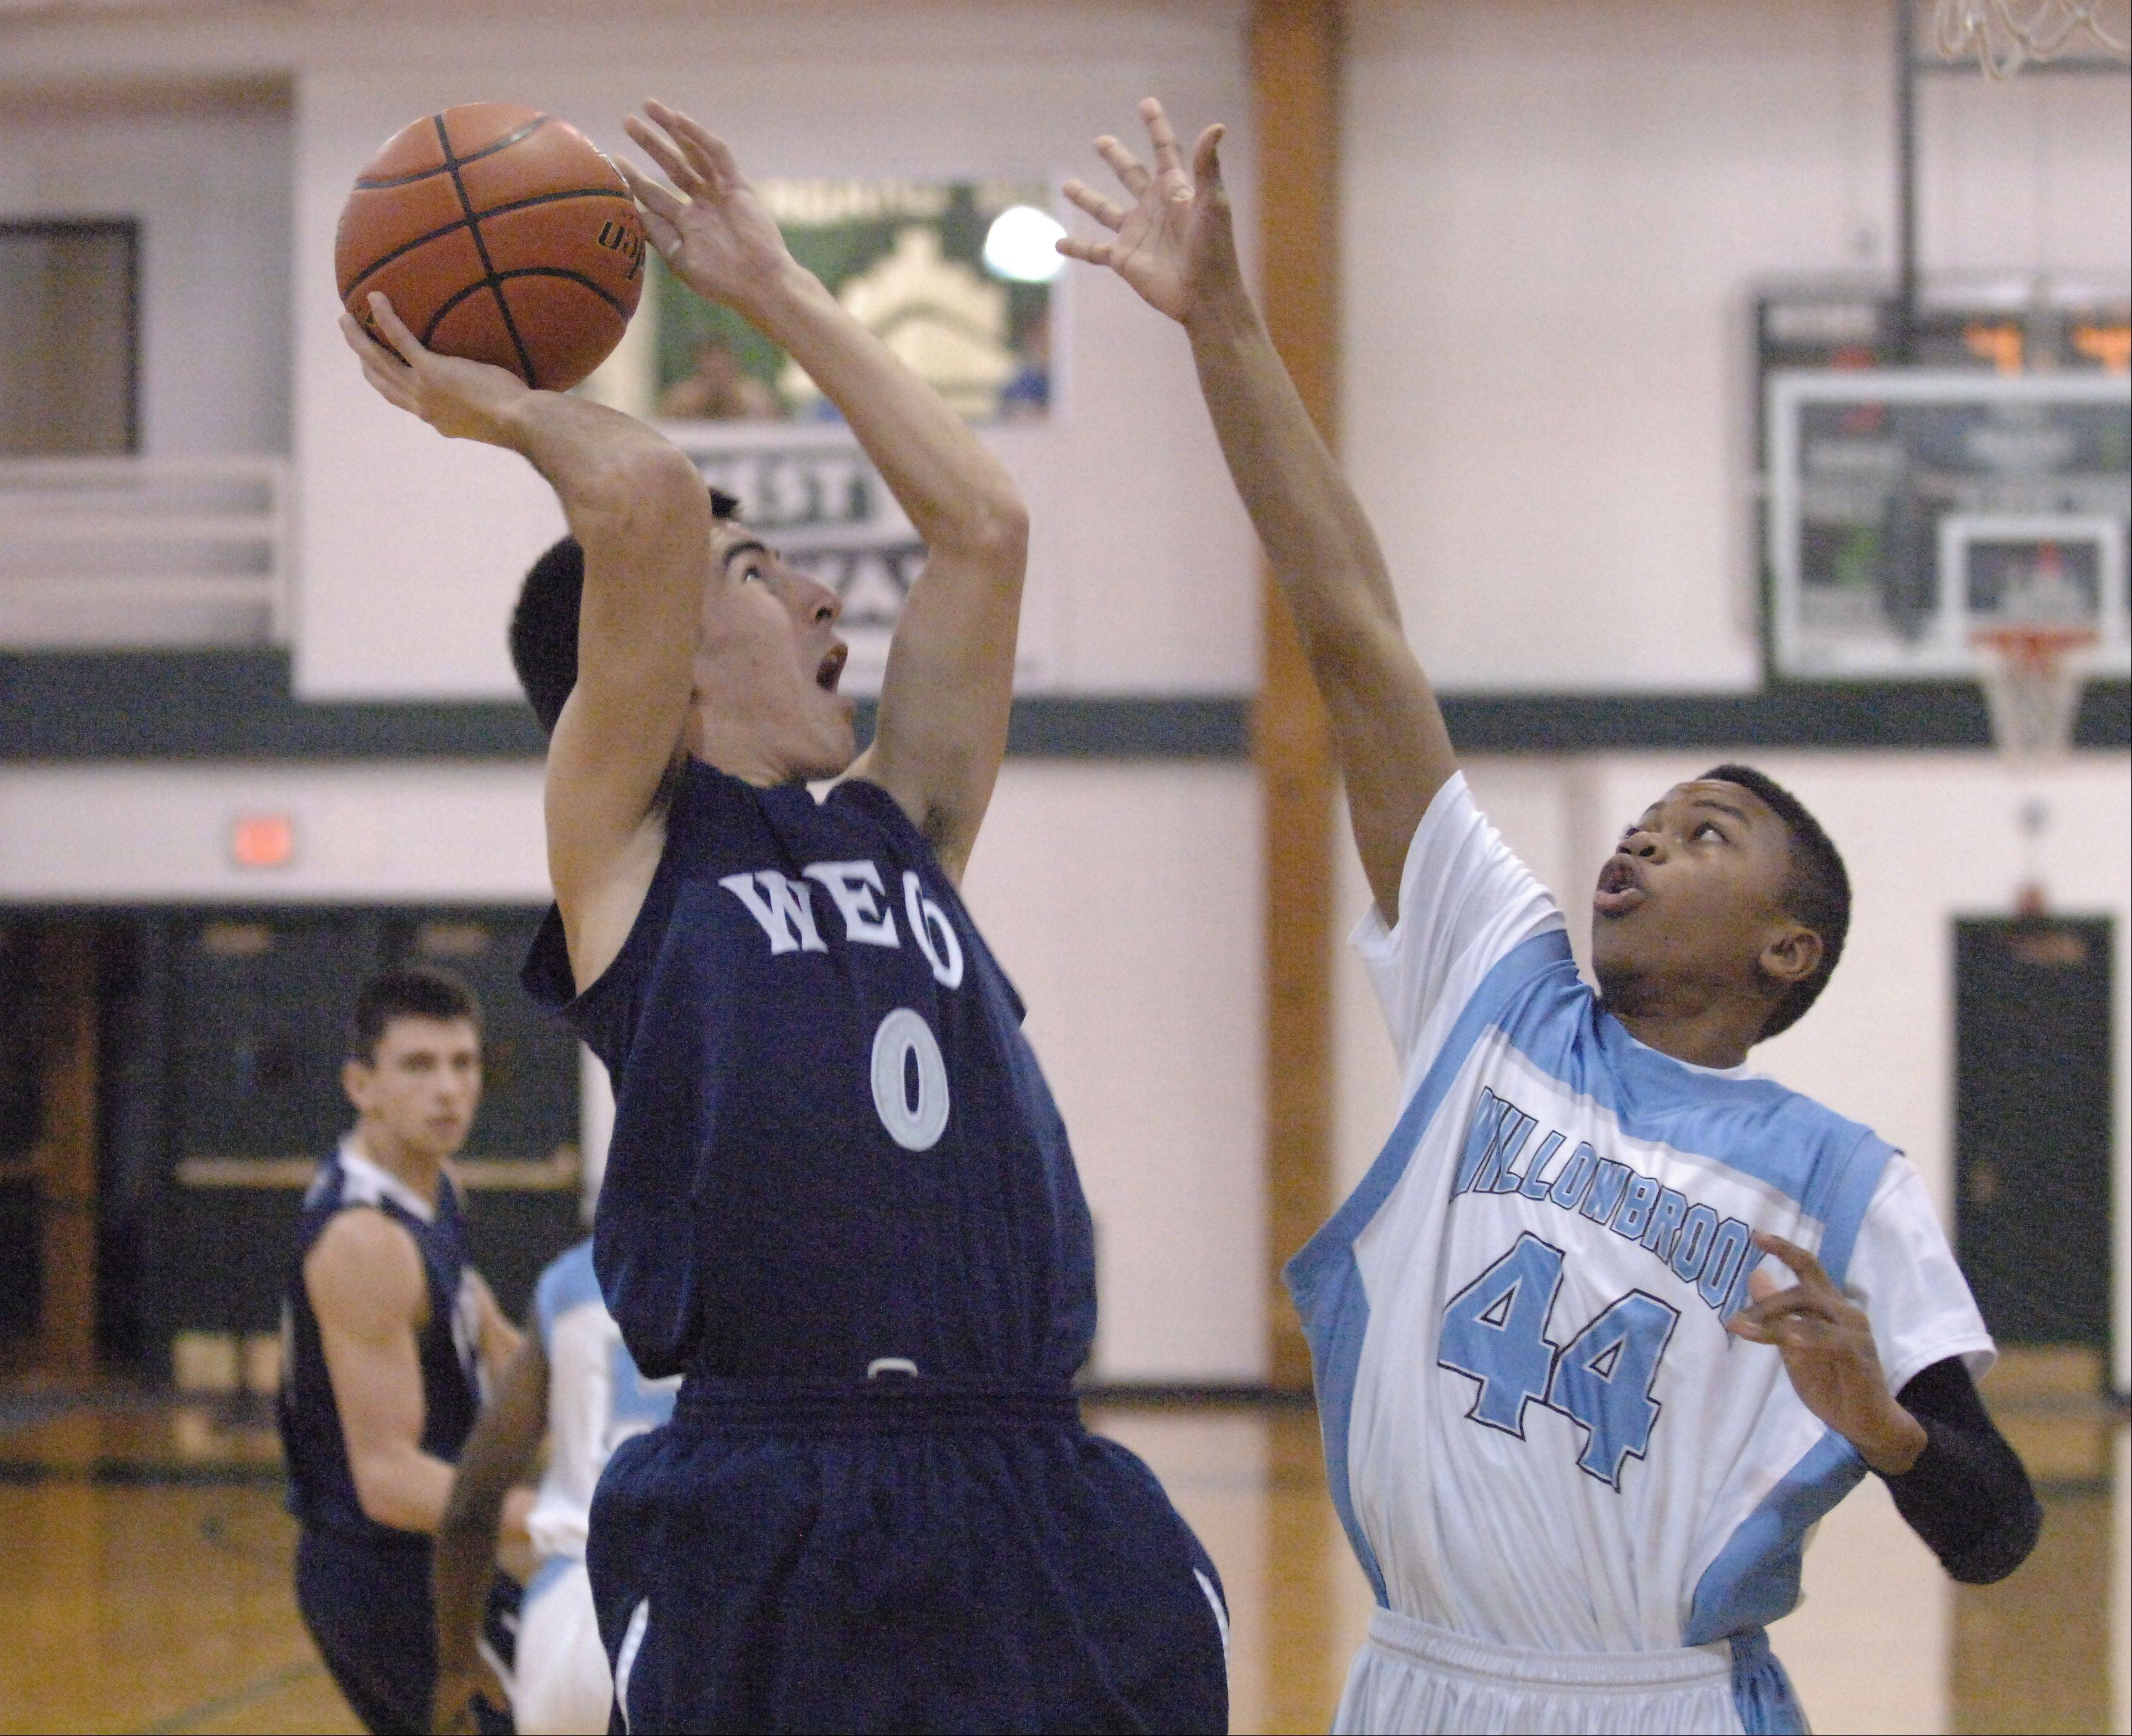 Images from the West Chicago vs. Willowbrook boys basketball game at the Glenbard West Holiday Classic on Thursday, December 27, 2012.